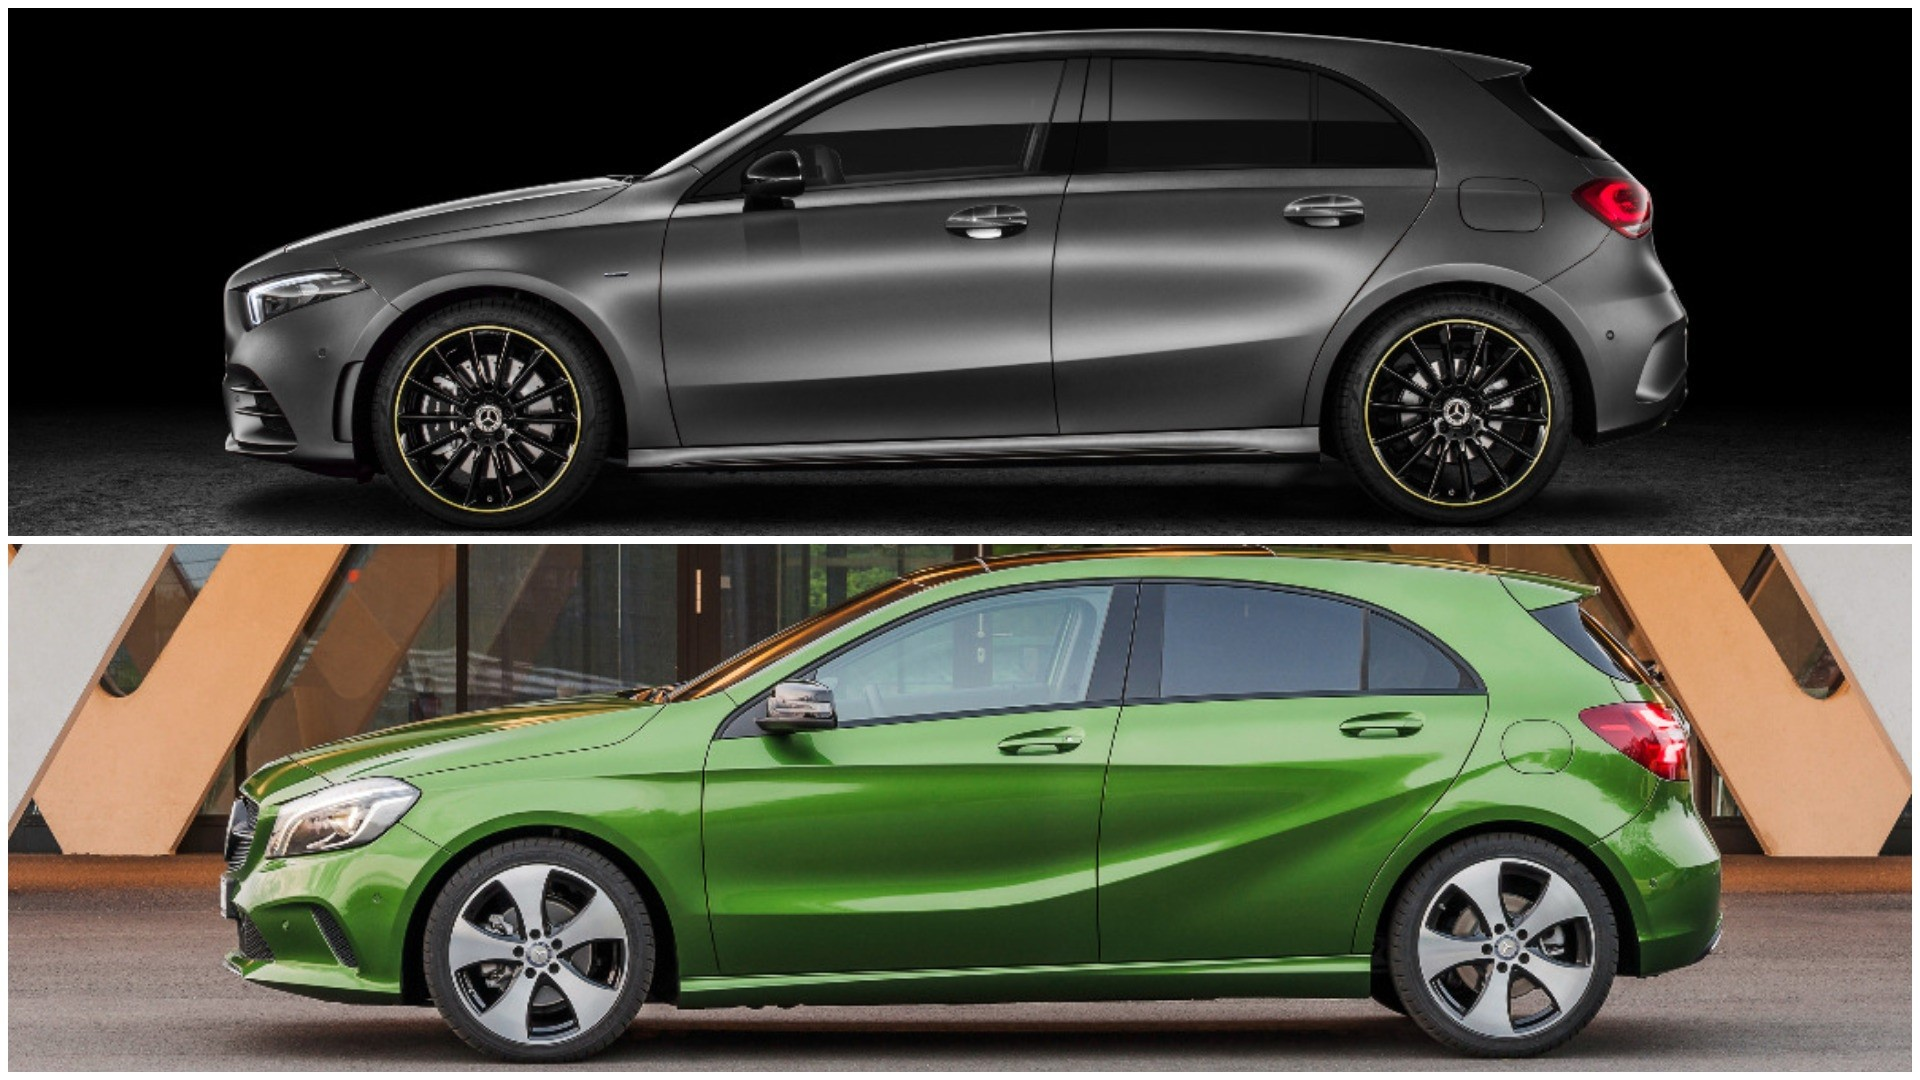 Photo Comparison 2019 W177 Mercedes A Class Vs Old W176 A